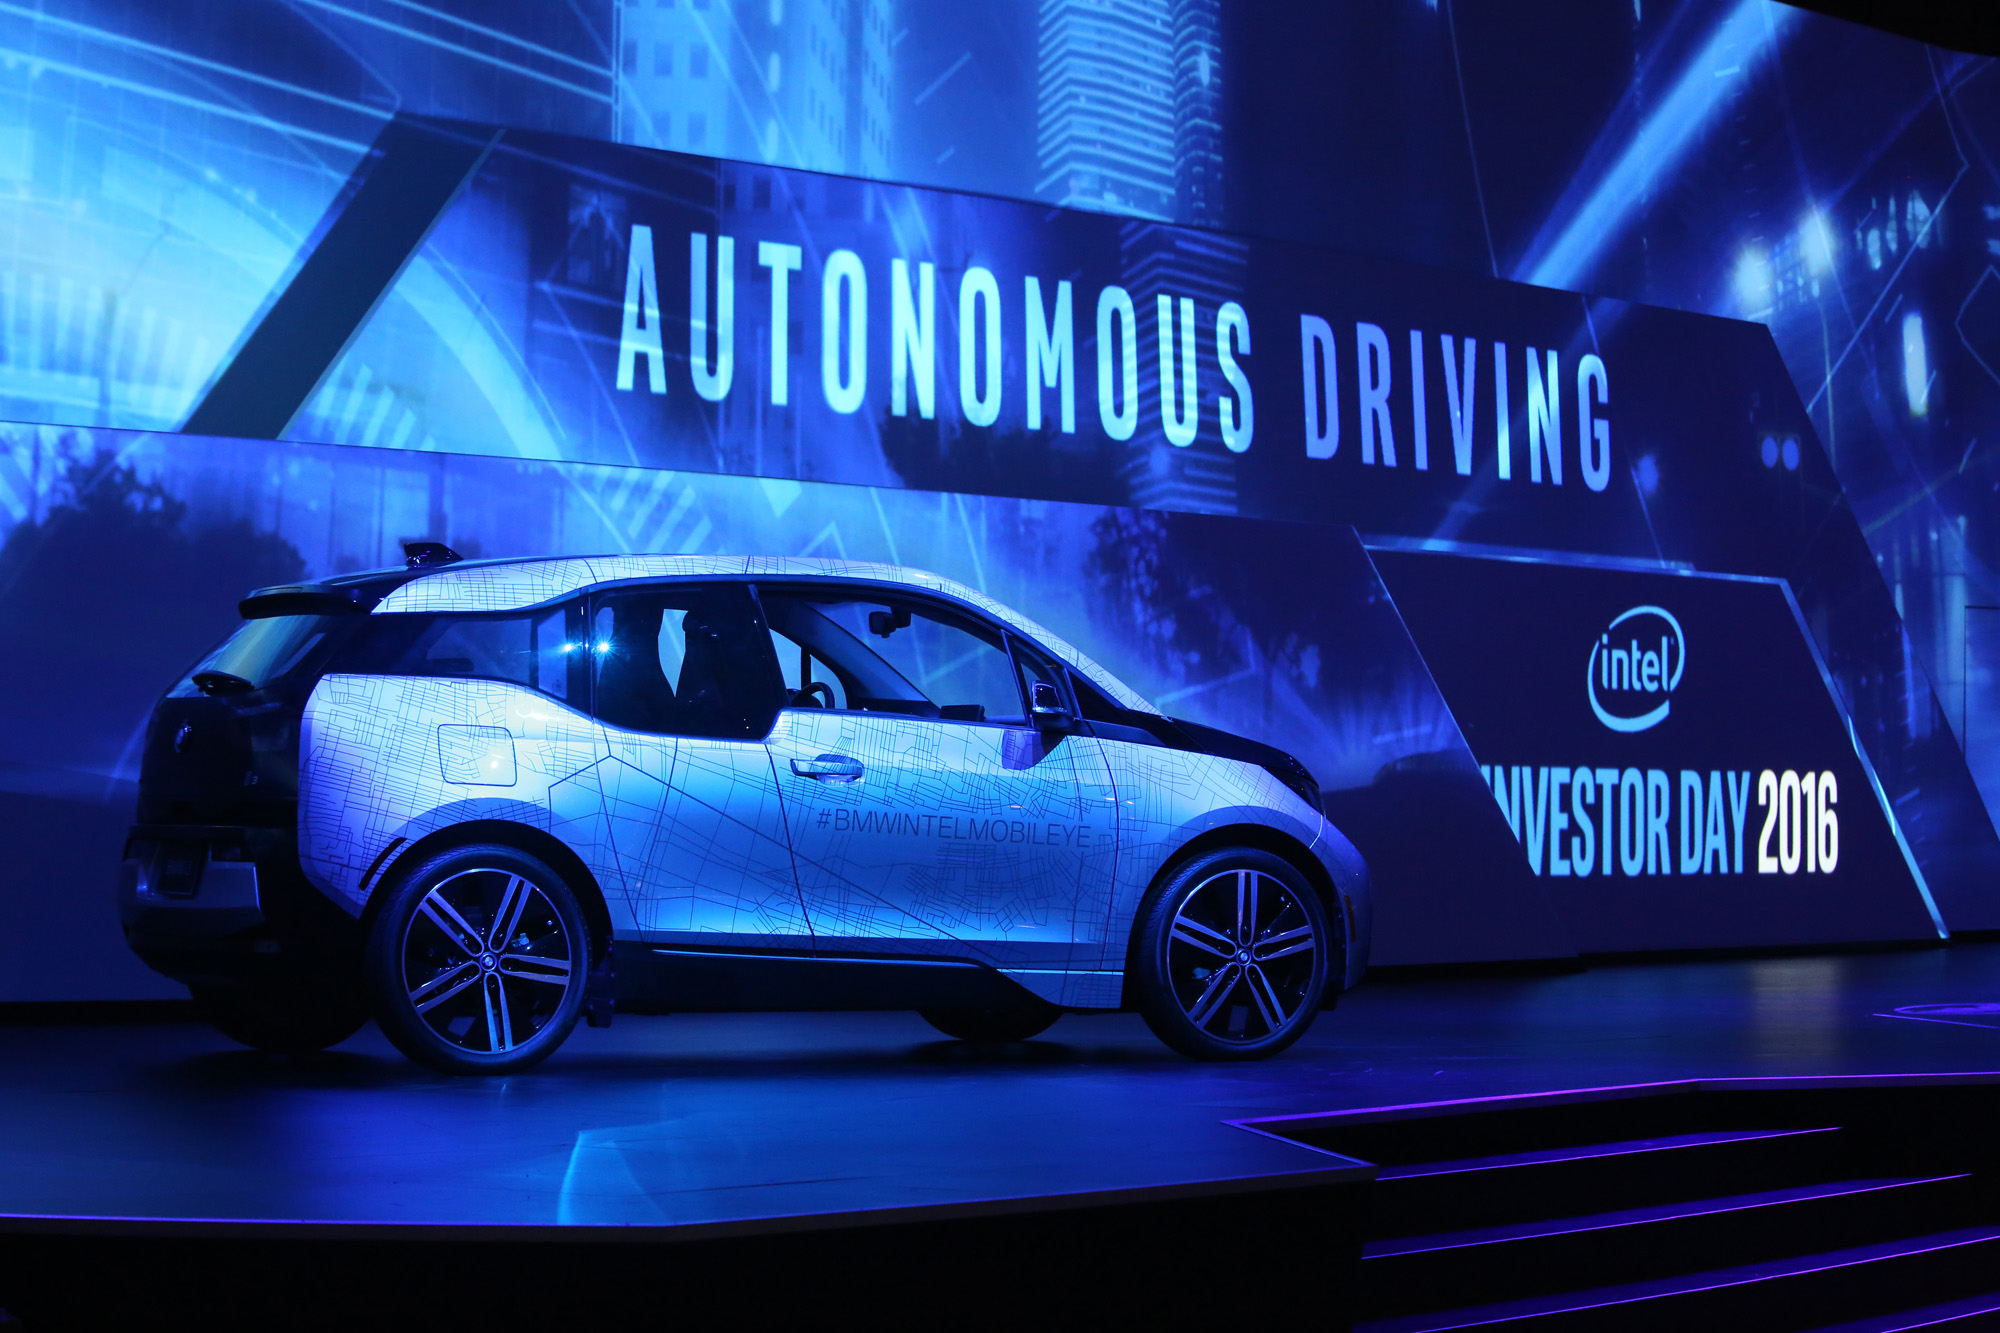 A BMW i3 is on display as part of Intel's Investors Day events at the 2016 Intel Developer Forum in San Francisco on Thursday, Aug. 18, 2016. (Credit: Intel Corporation)